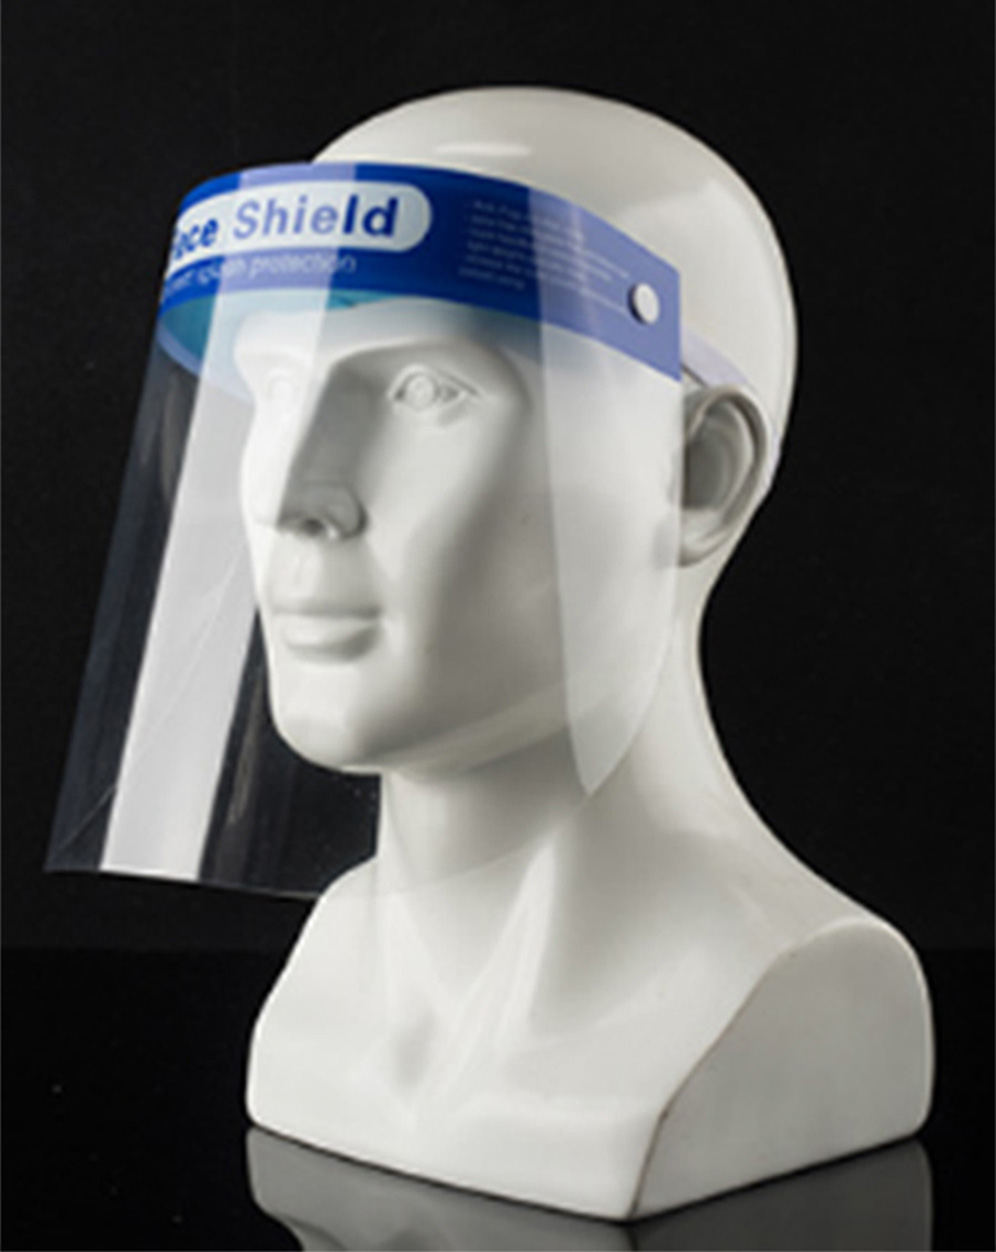 Medical splash-proof isolation mask used in hospital